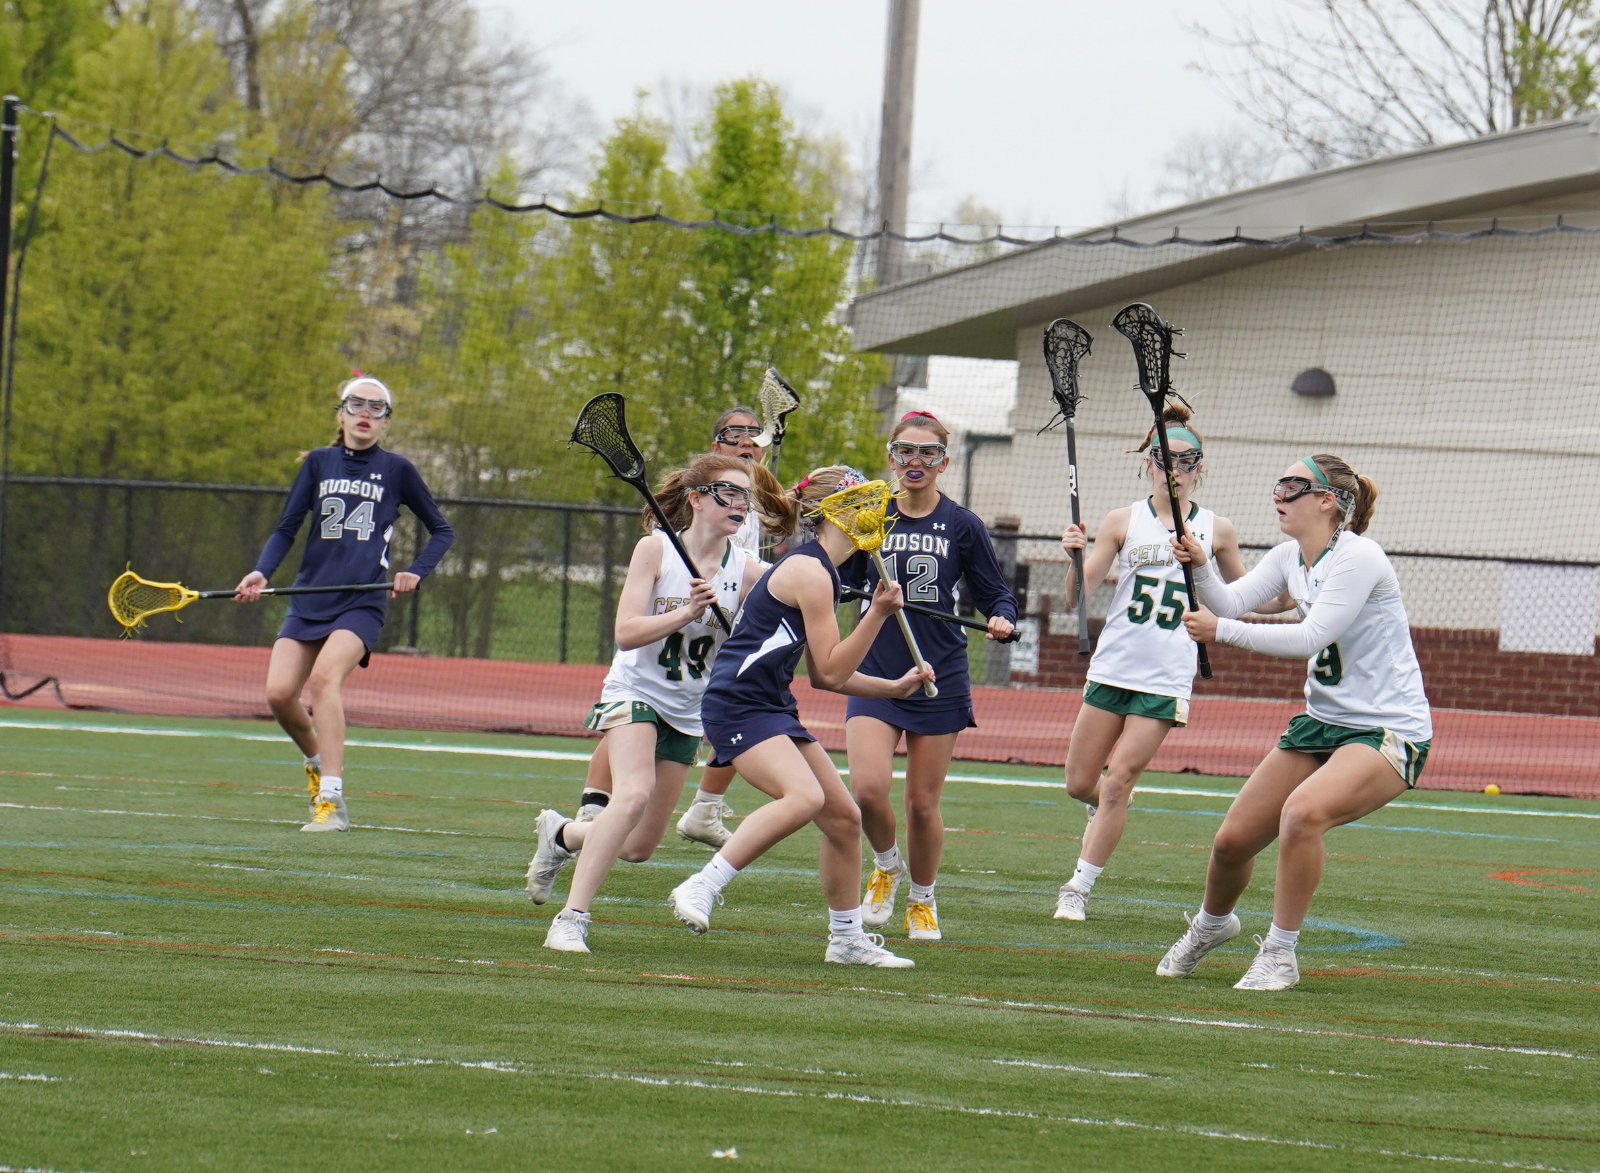 JV Girls Lacrosse vs. Hudson 4/25 (photos)